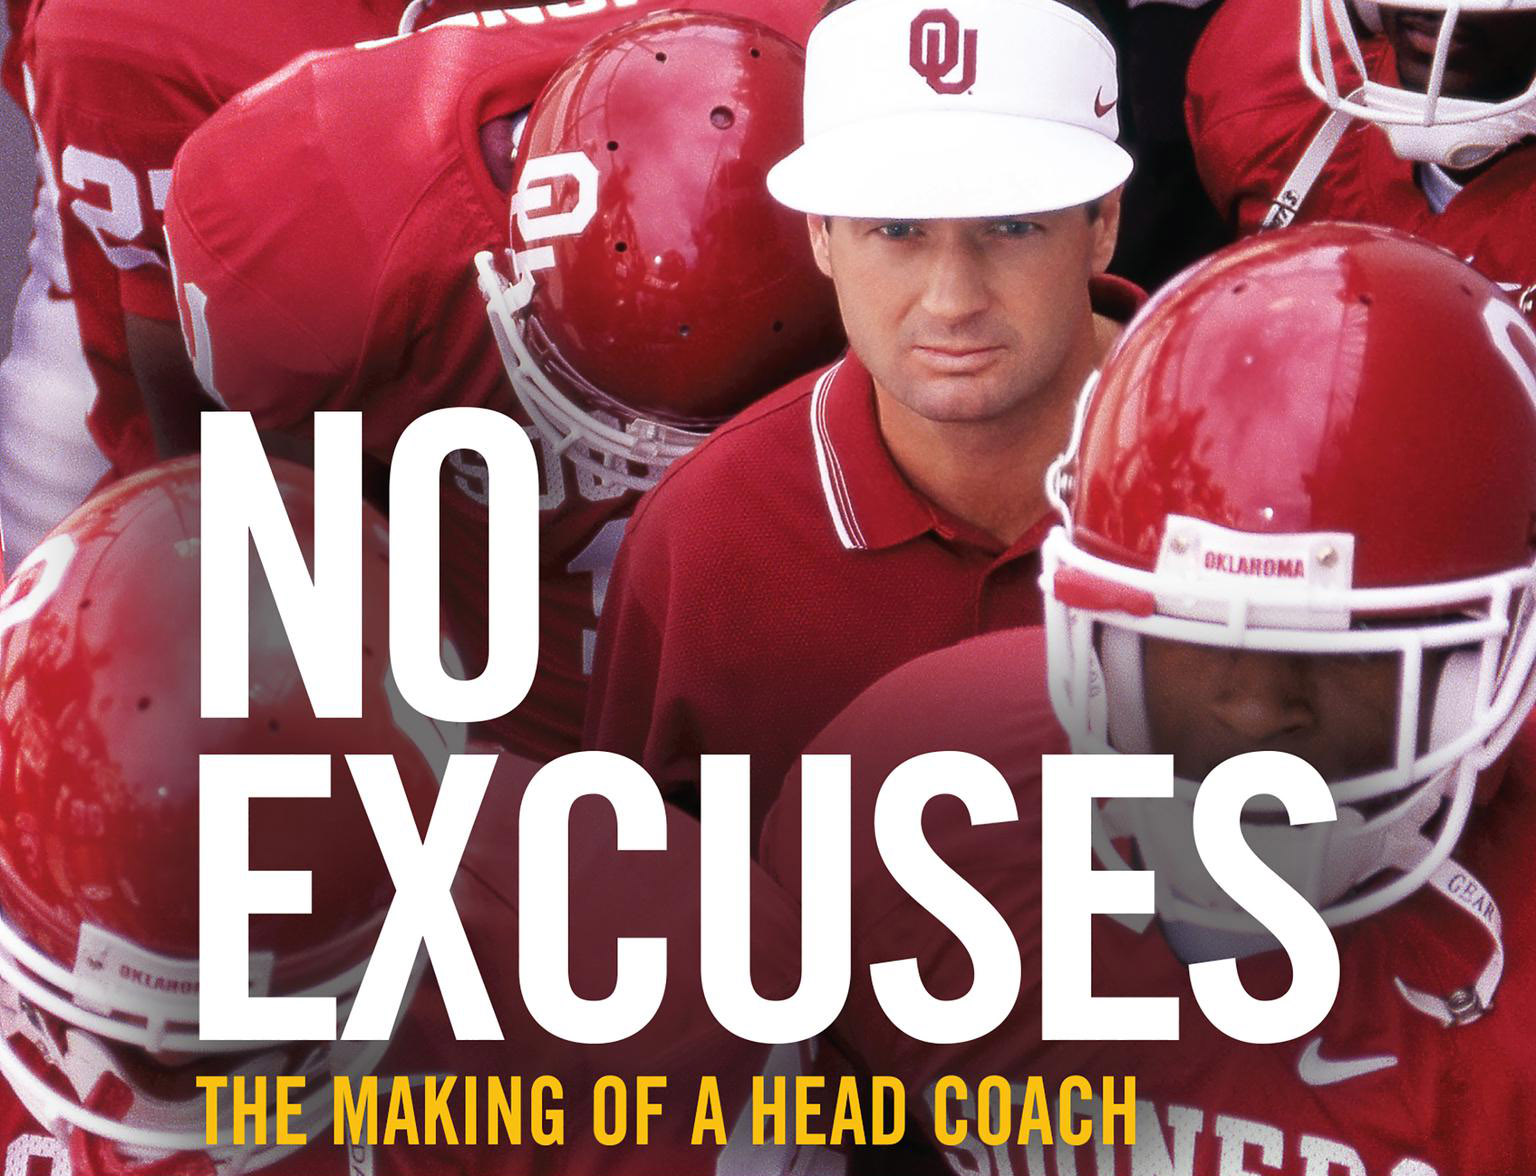 No Excuses: The Making of a Head Coach buy Bob Stoops